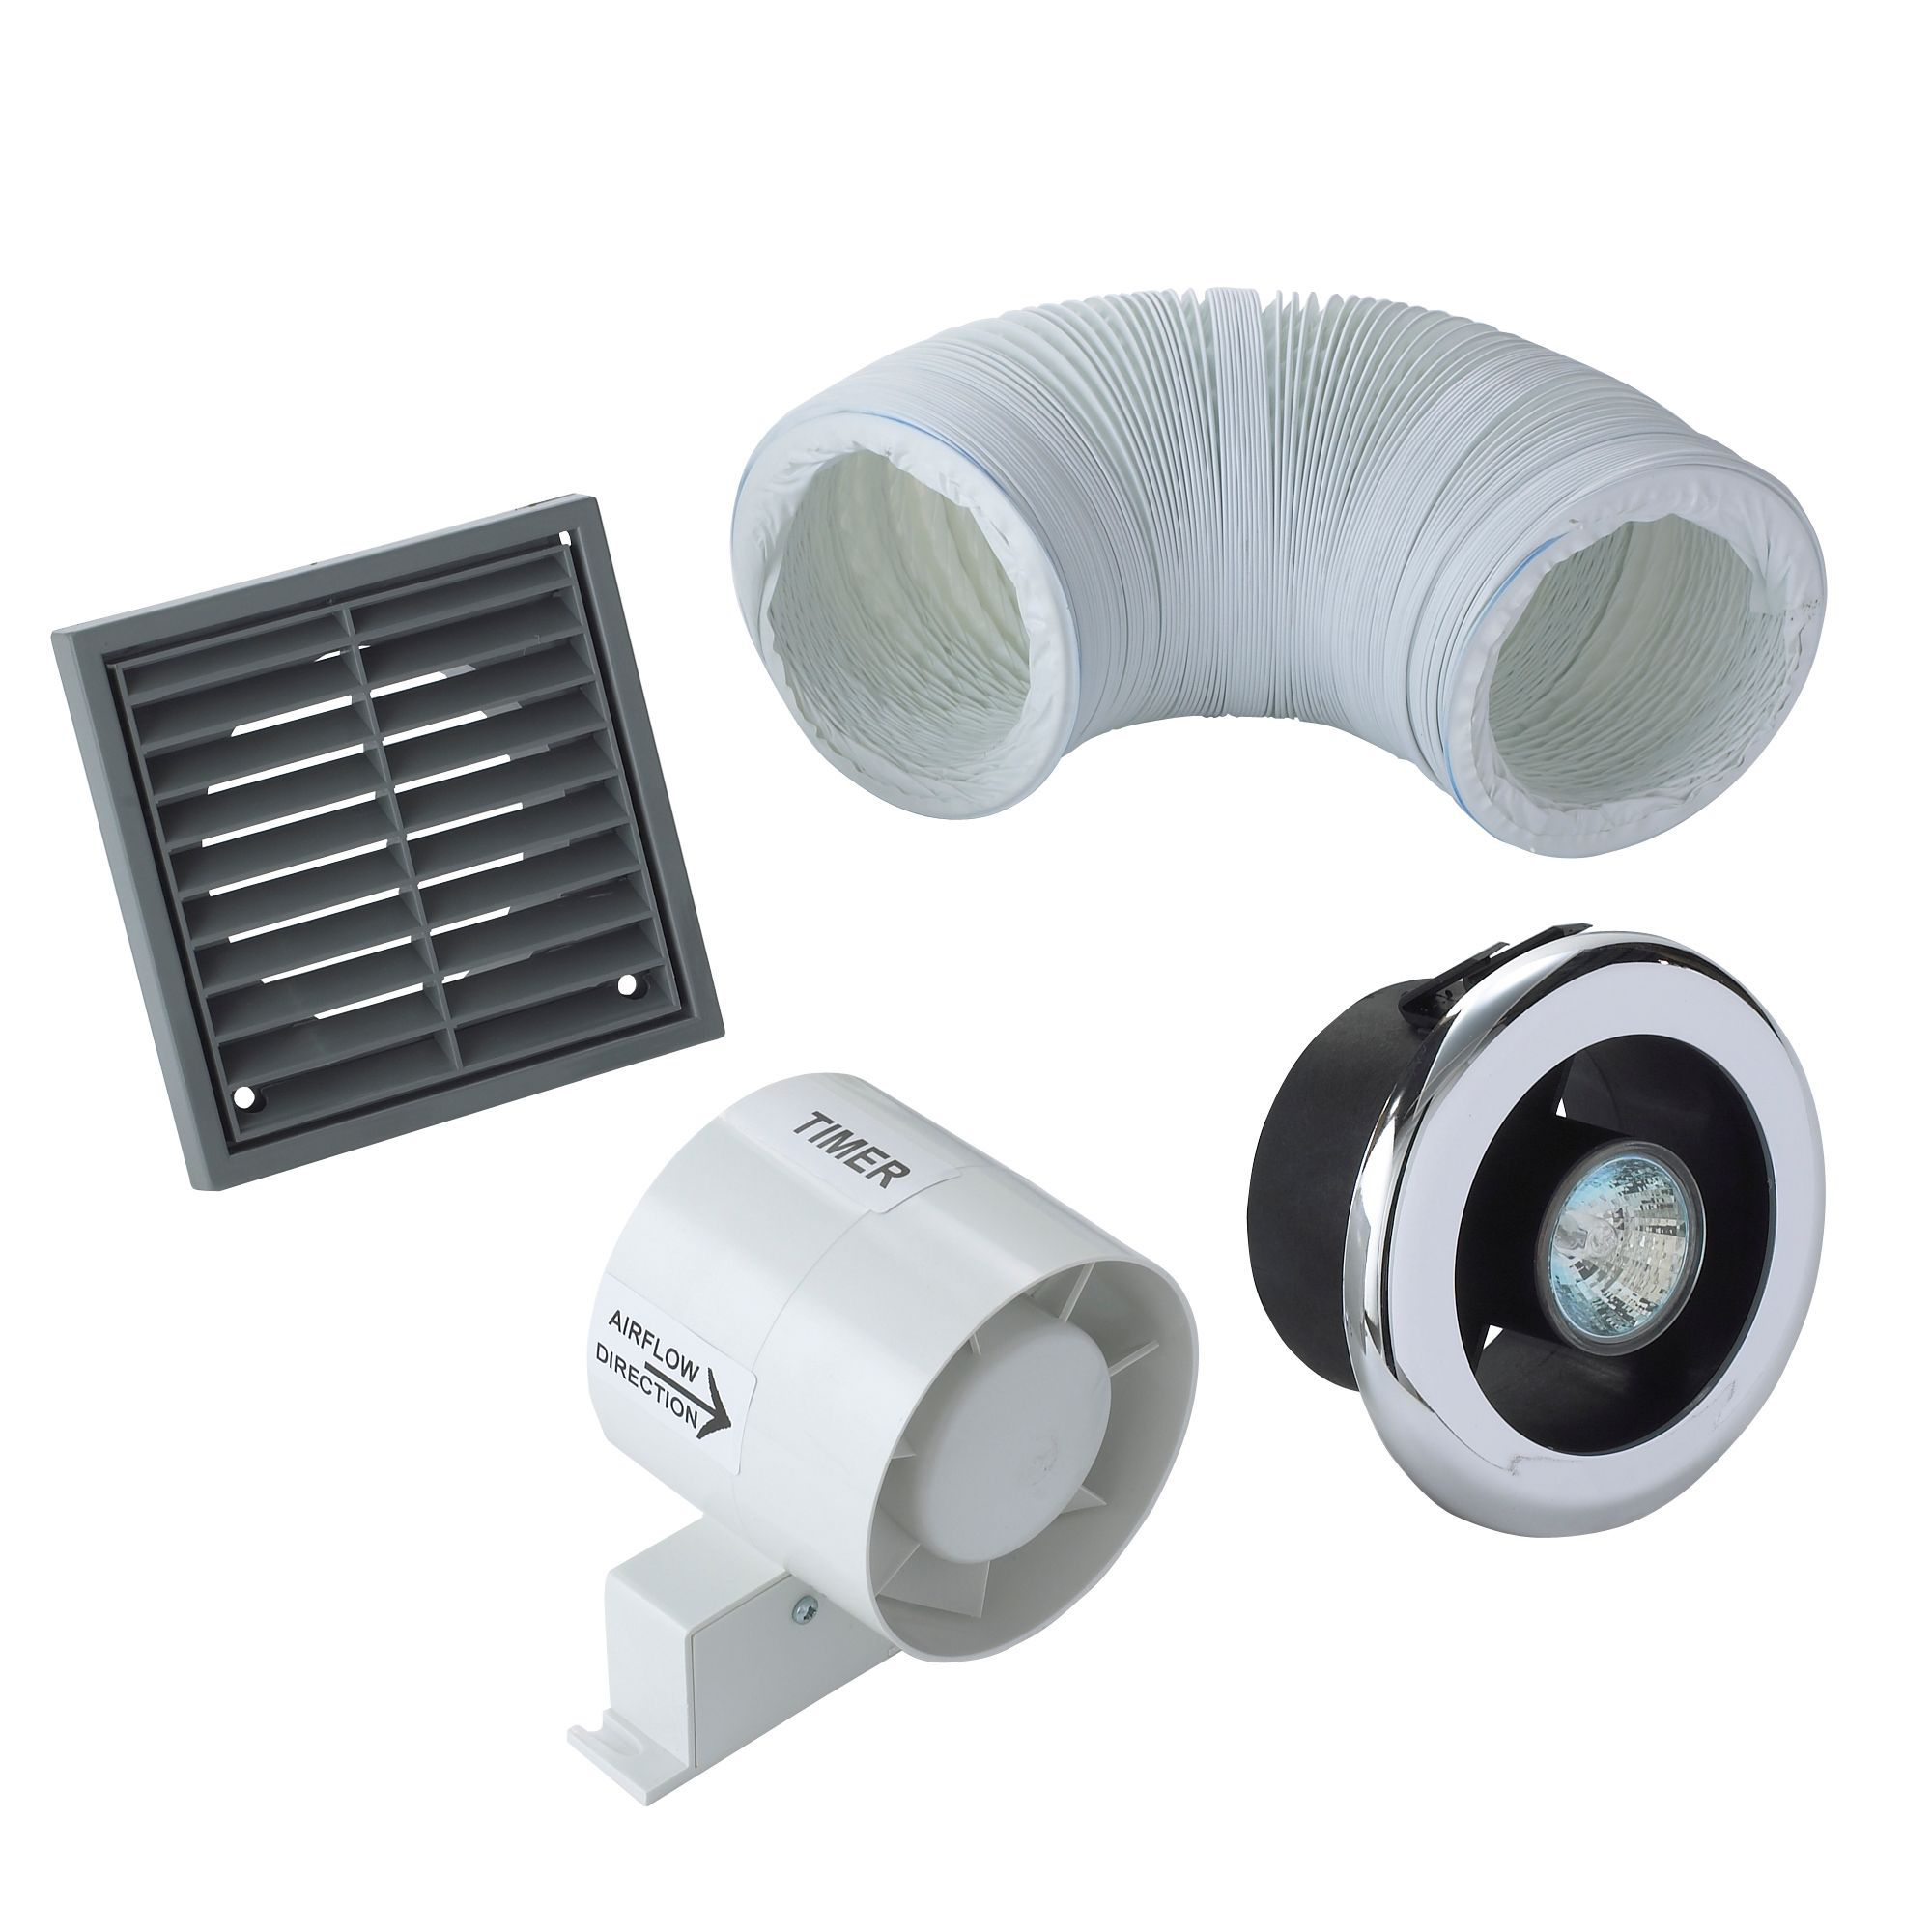 Manrose vdisl100t shower light bathroom extractor fan kit - Bathroom ceiling extractor fan with light ...